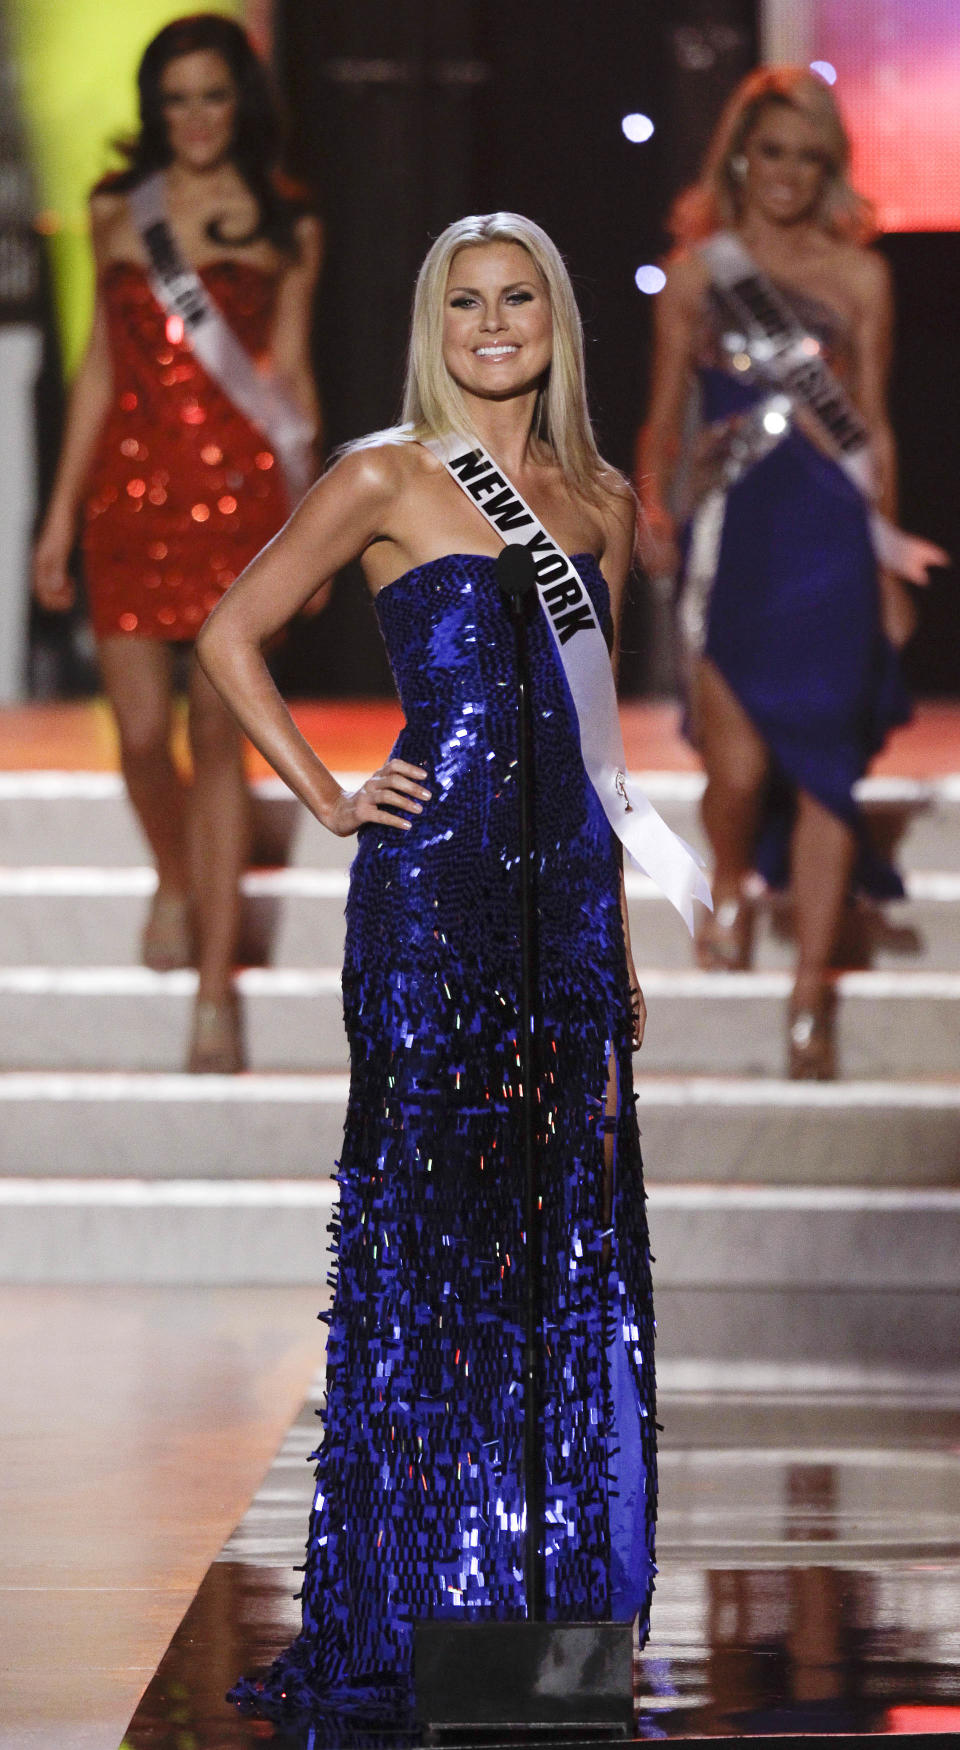 Amber Marie Collins, Miss New York, introduces herself at the start of the Miss USA pageant, Sunday, June 19, 2011, in Las Vegas.  (AP Photo/Julie Jacobson)